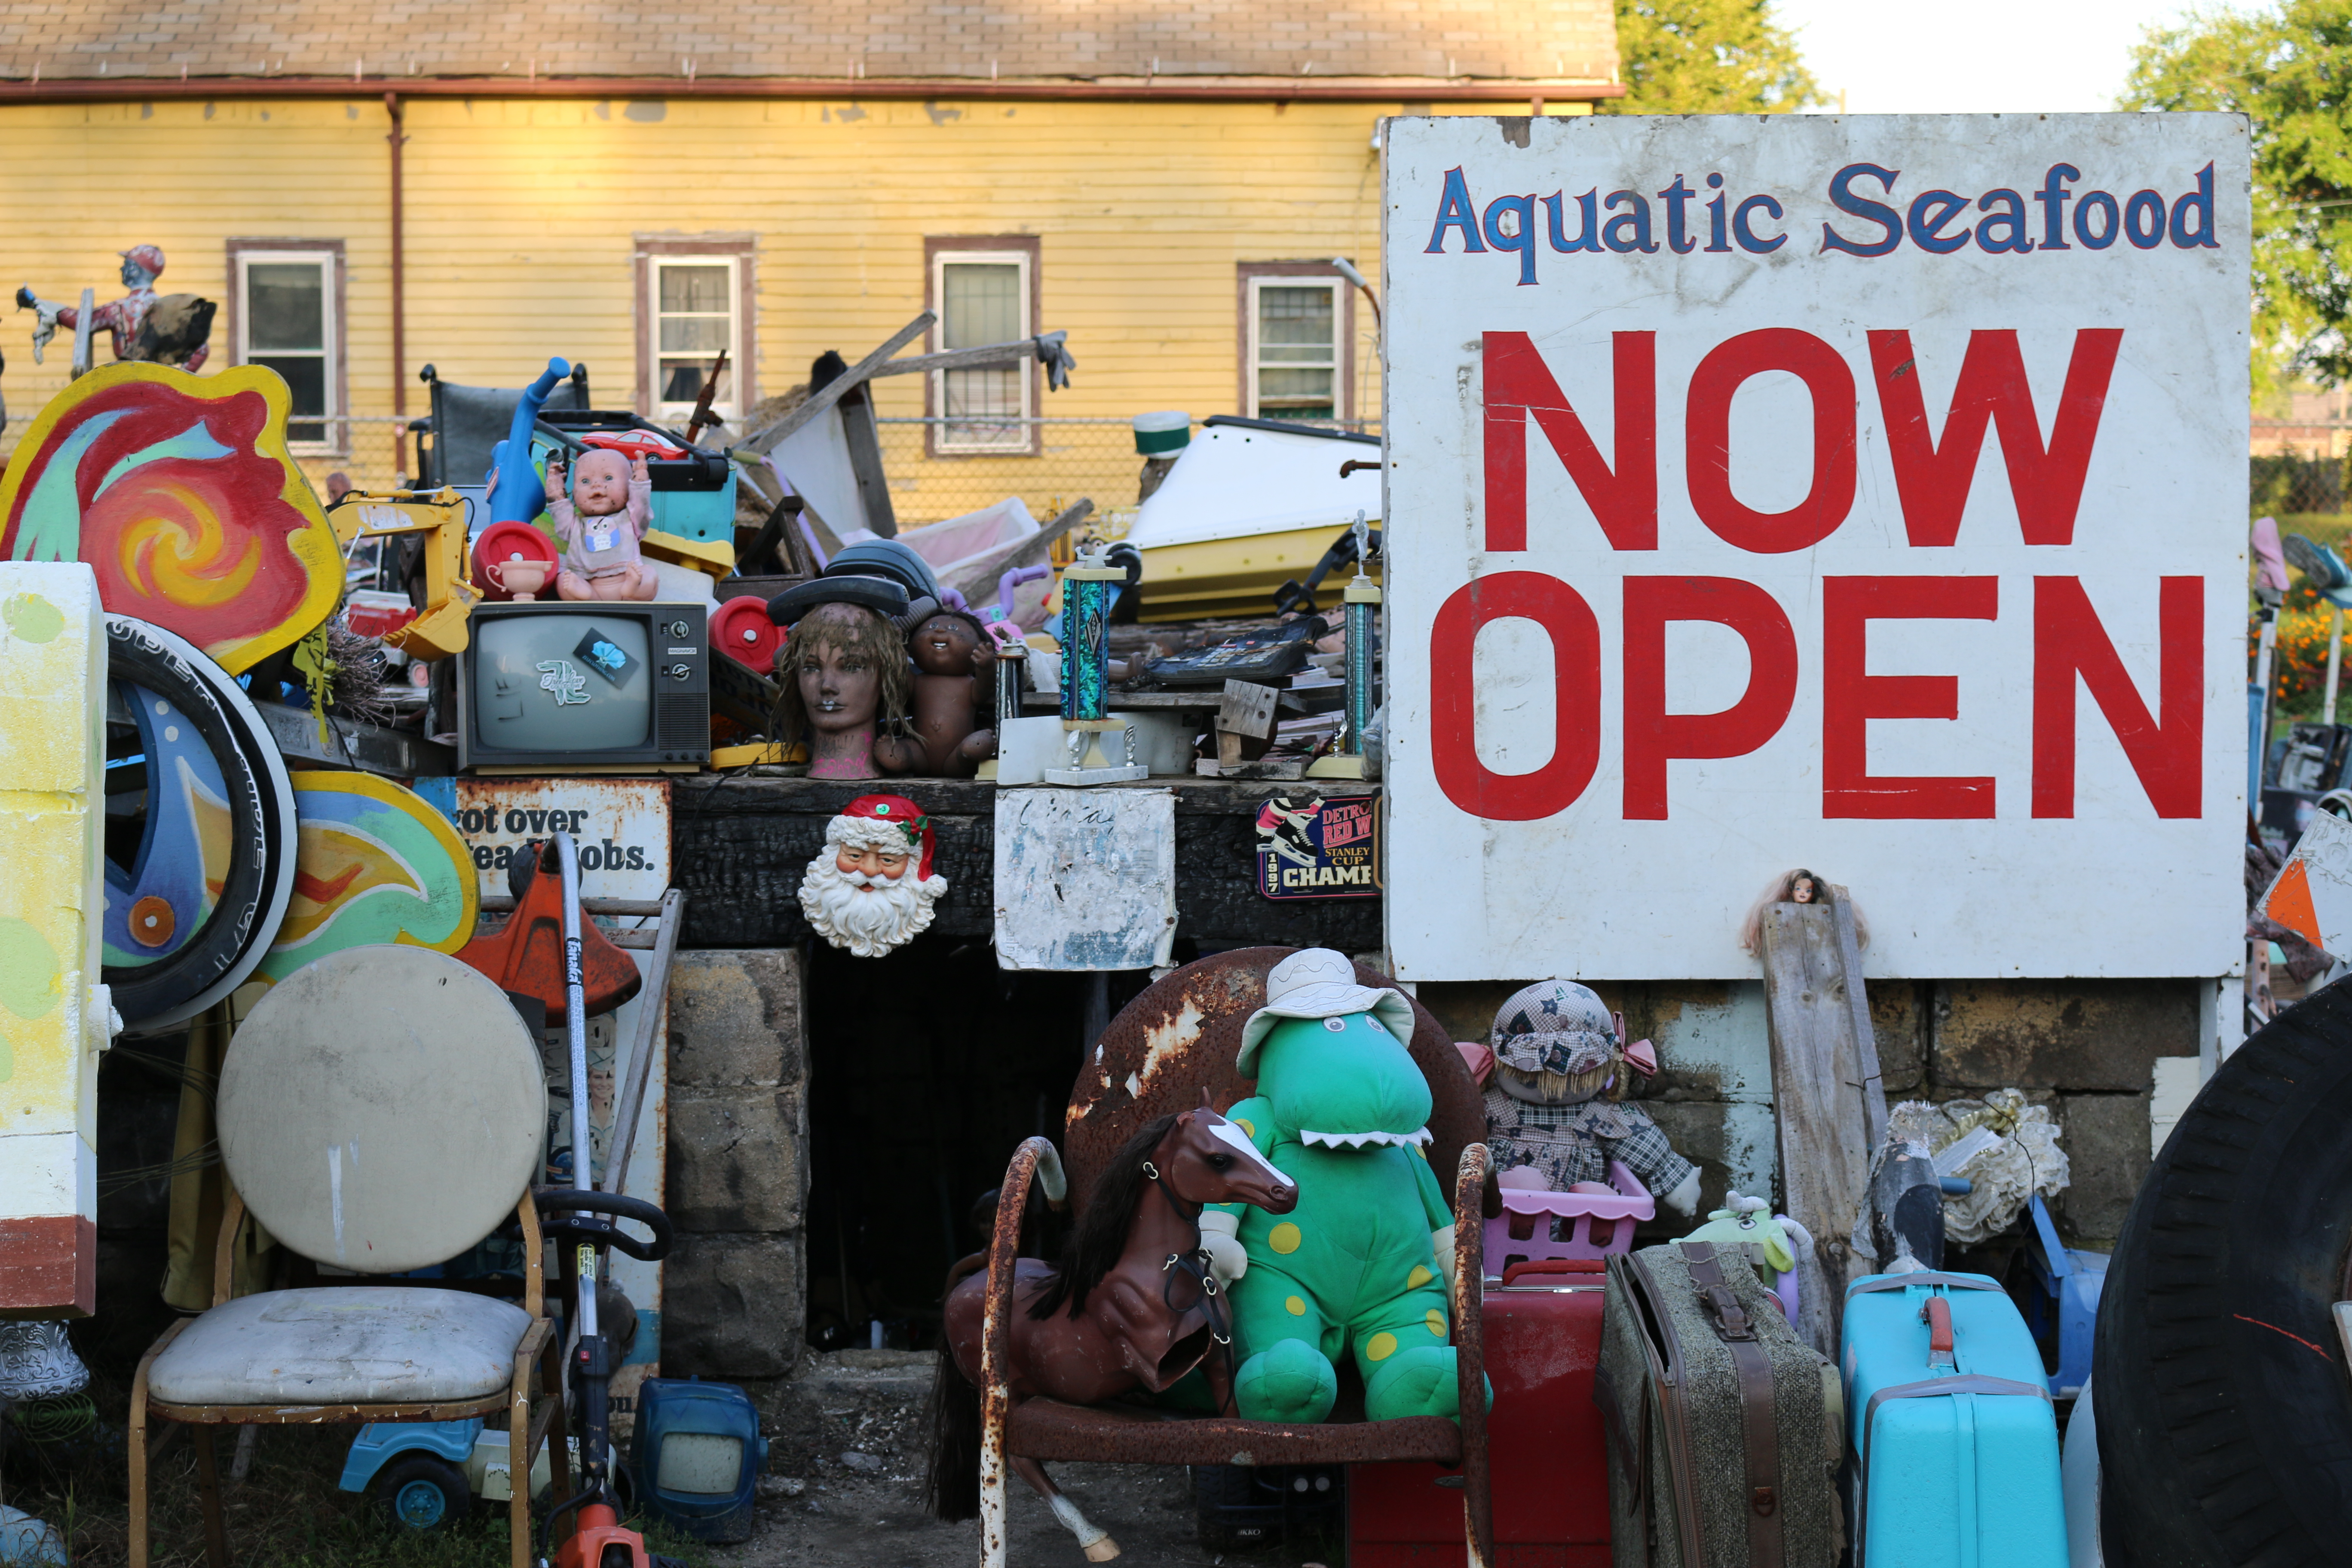 Large Now Open Aquatic Seafood sign with large cardboard Sponge Bob Squarepants standing on a chair with several random sea animal toys.